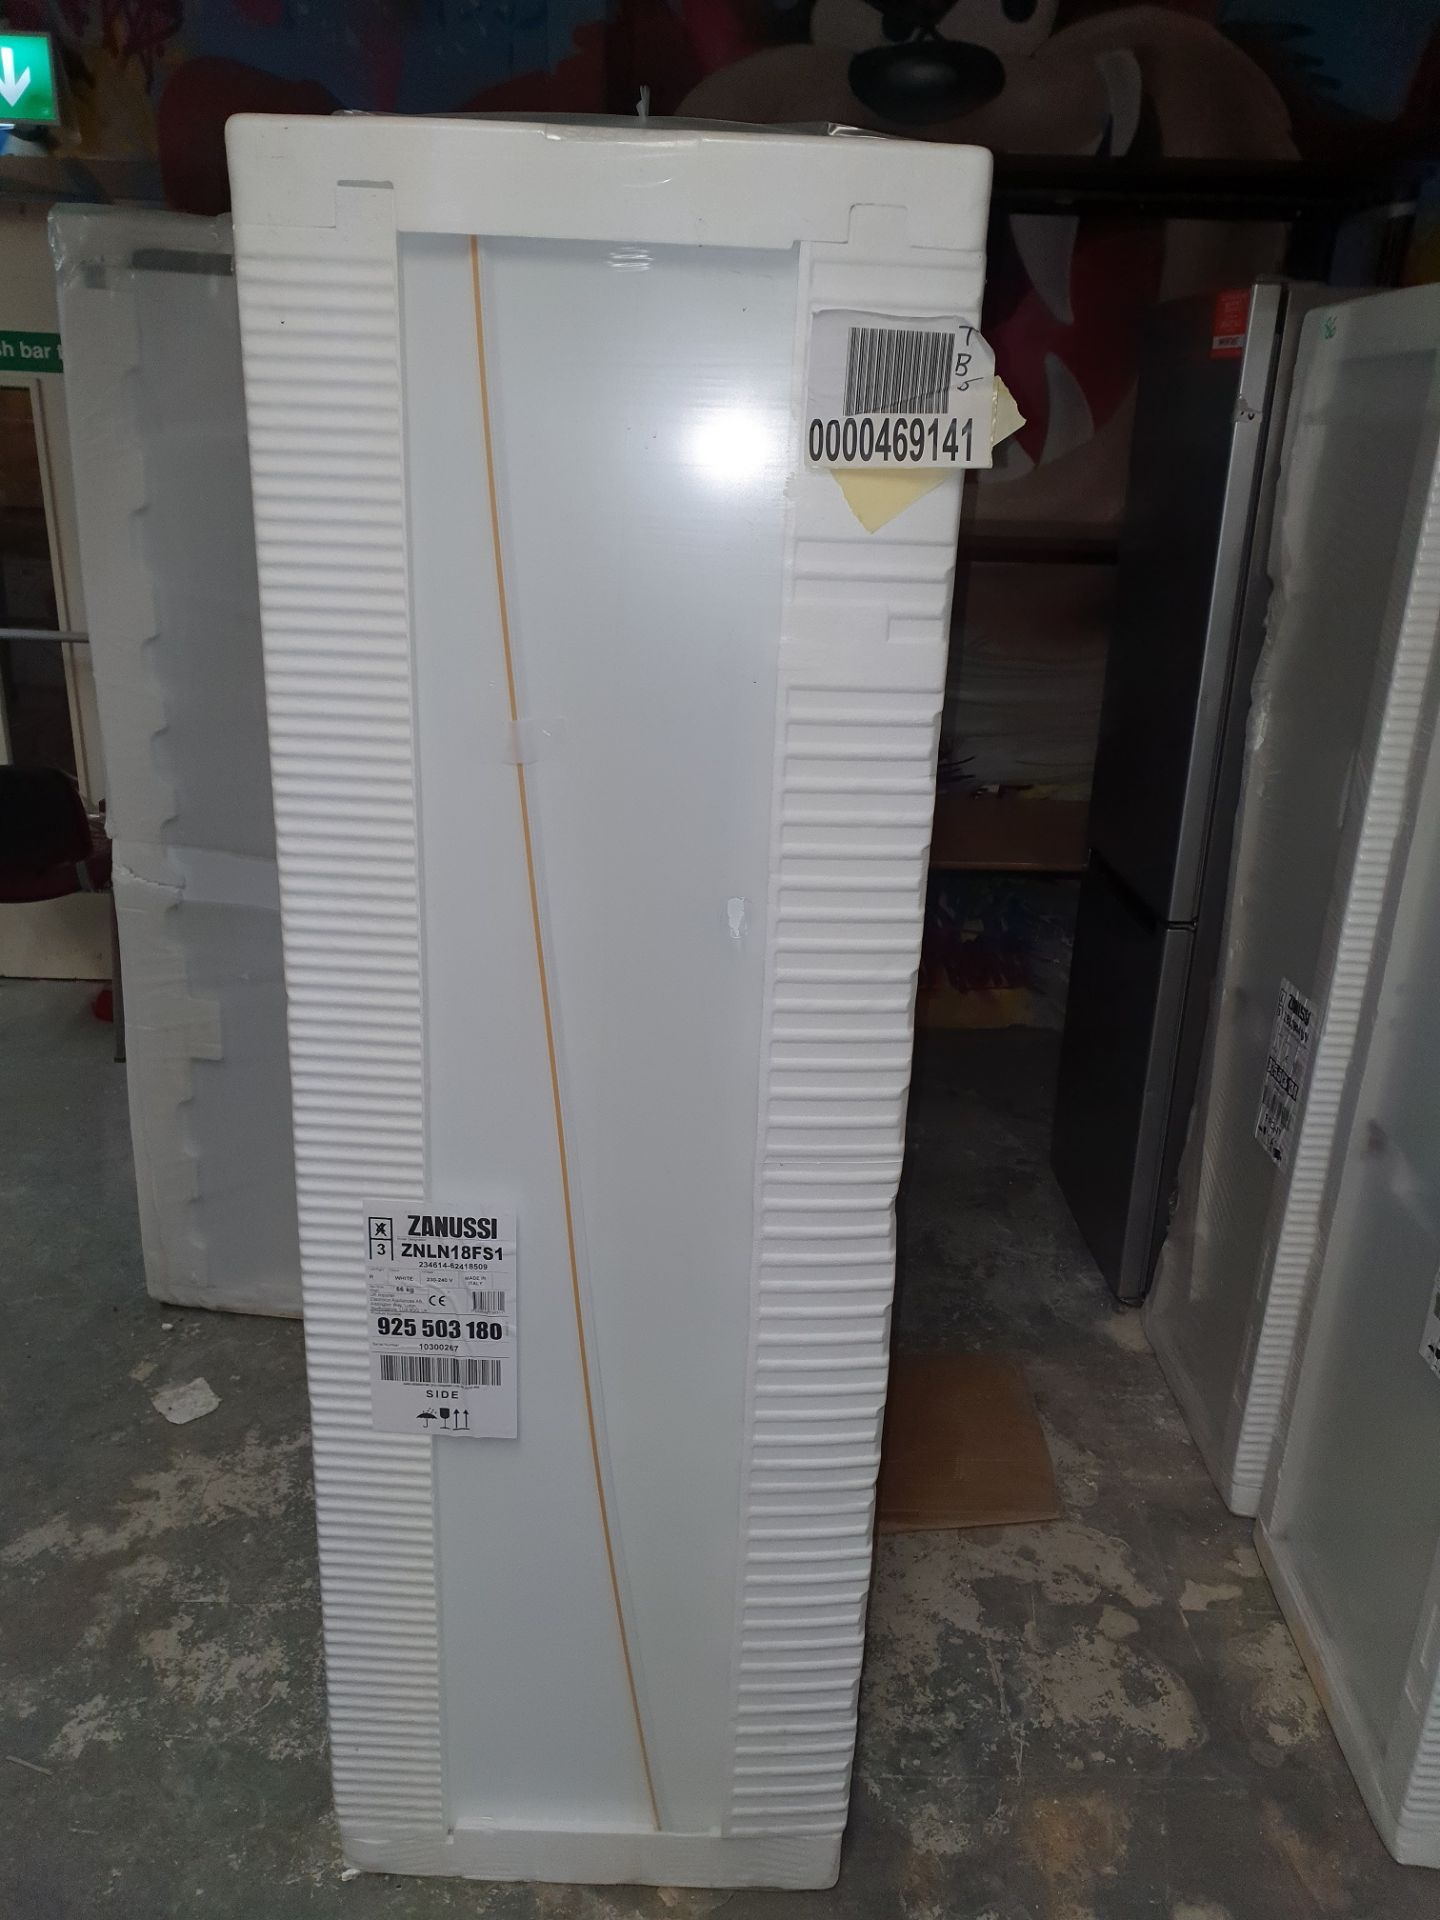 NEW/GRADED AND UNPACKAGED Zanussi ZBB28441SV Integrated 70/30 Fridge Freezer (Brand new slight